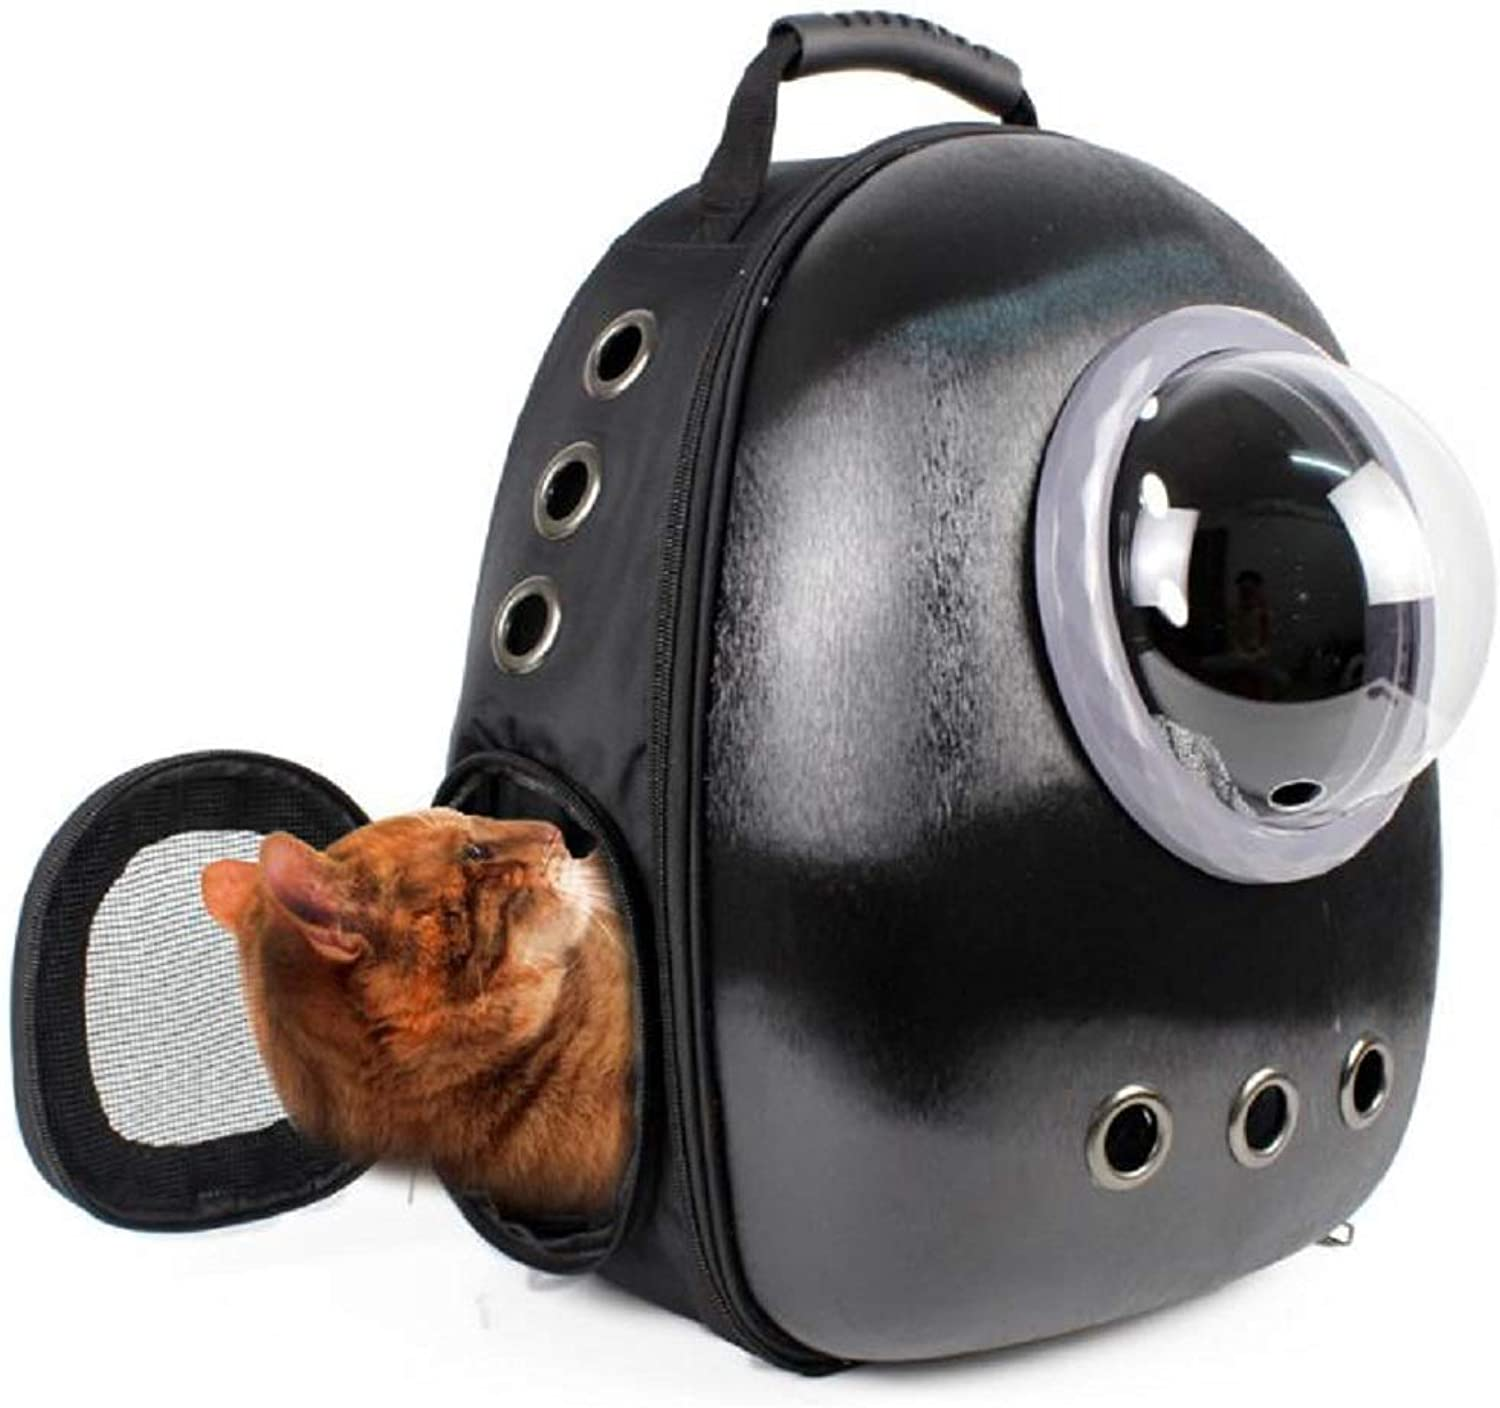 GDDYQ Pet Bag, Portable Out Carrying Bag Cat Puppy Travel Pet Backpack New Space Capsule Astronaut Carrier Bag